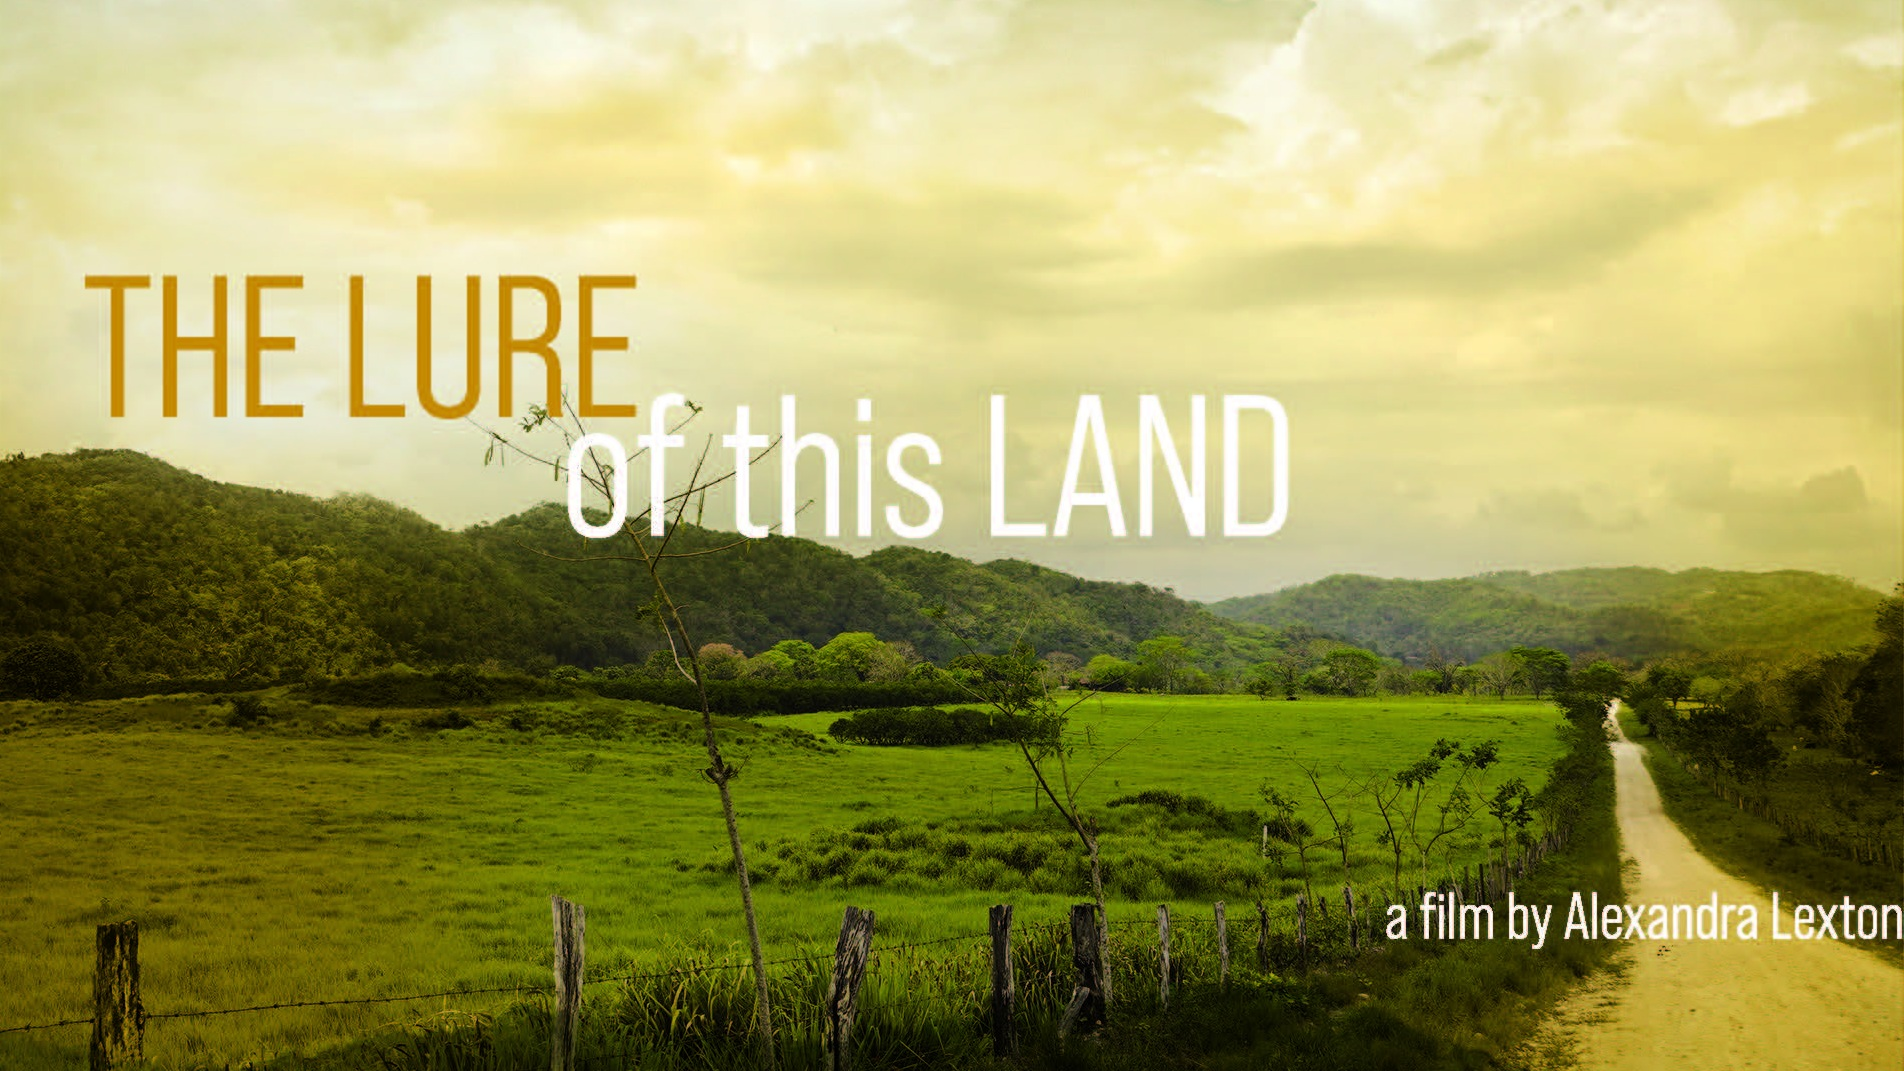 THE LURE OF THIS LAND    A story about expats and the filmmaker's journey to find their stories. What is it that propels us to leave the places we know? Why are some willing to get lost? What are they looking for and what do they find?